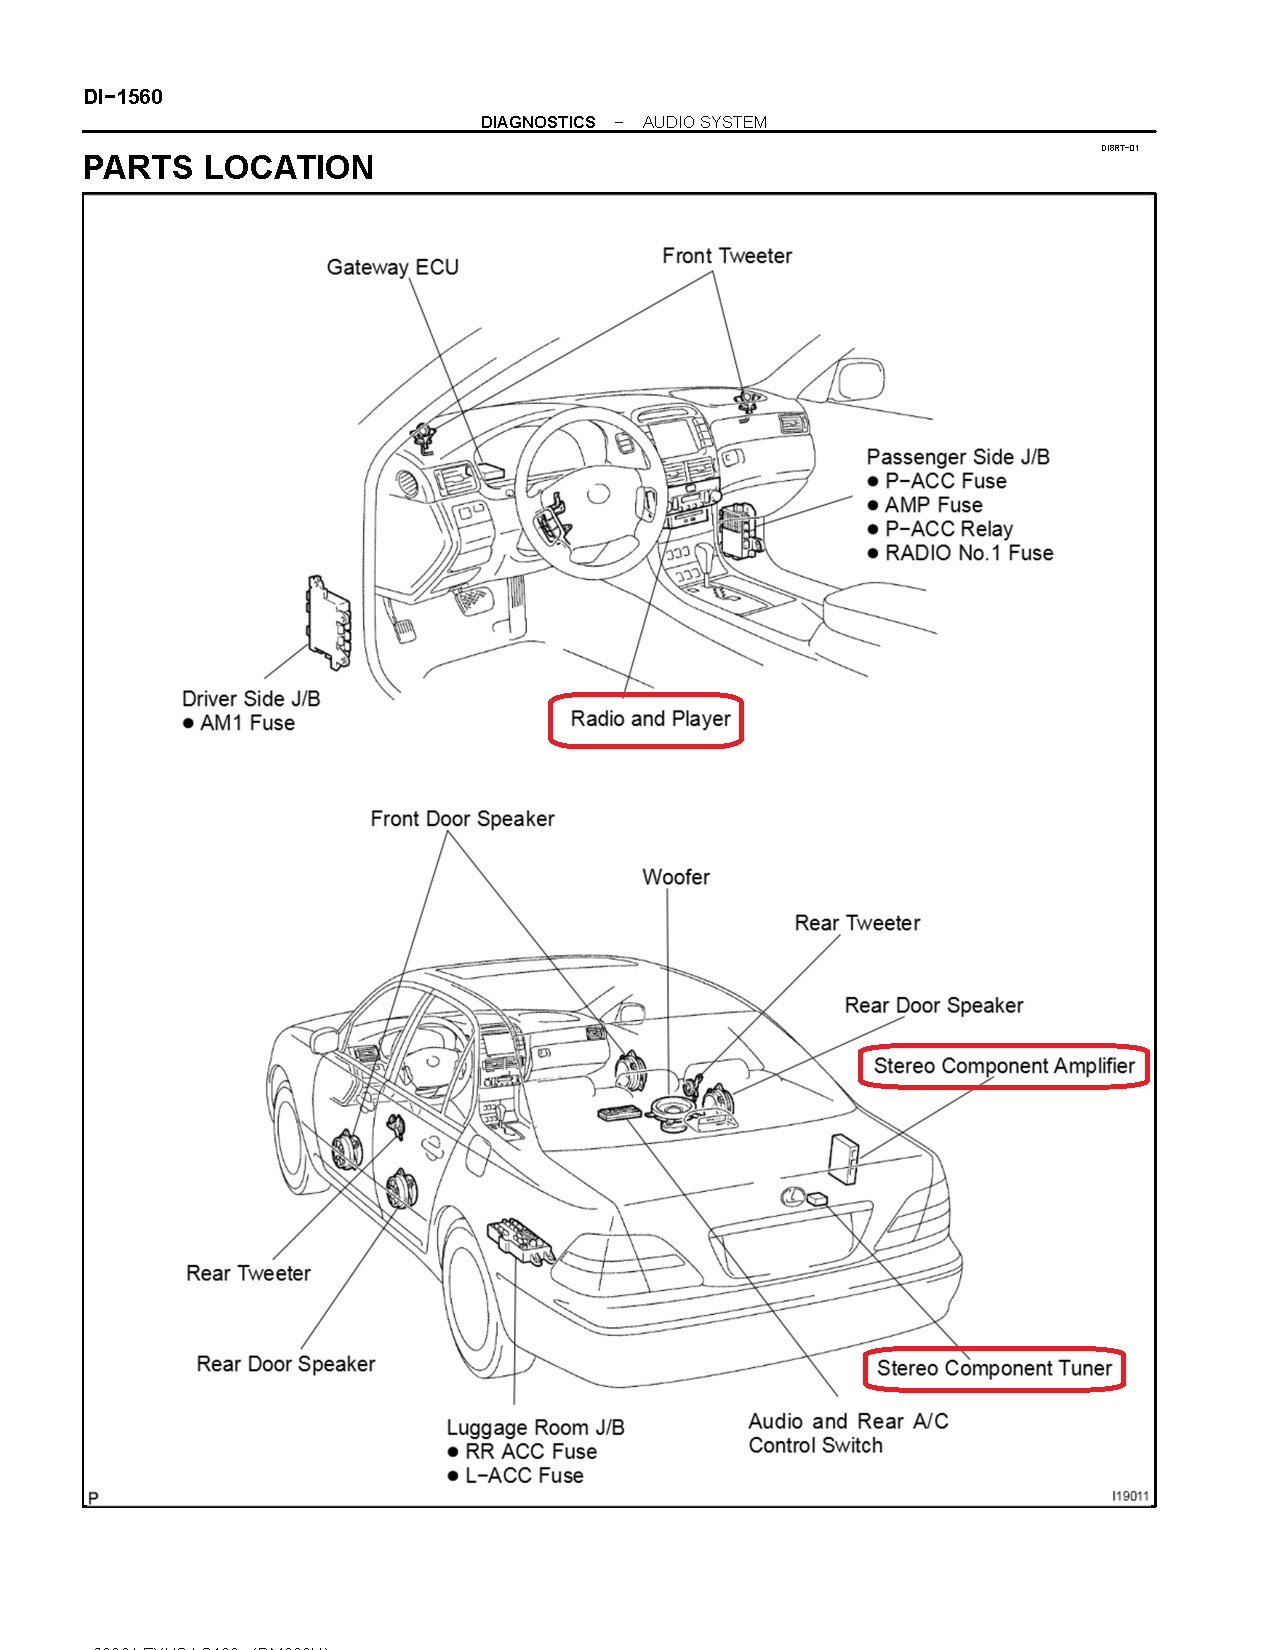 2002 Ls430 Radio Wiring Diagram Please - Clublexus